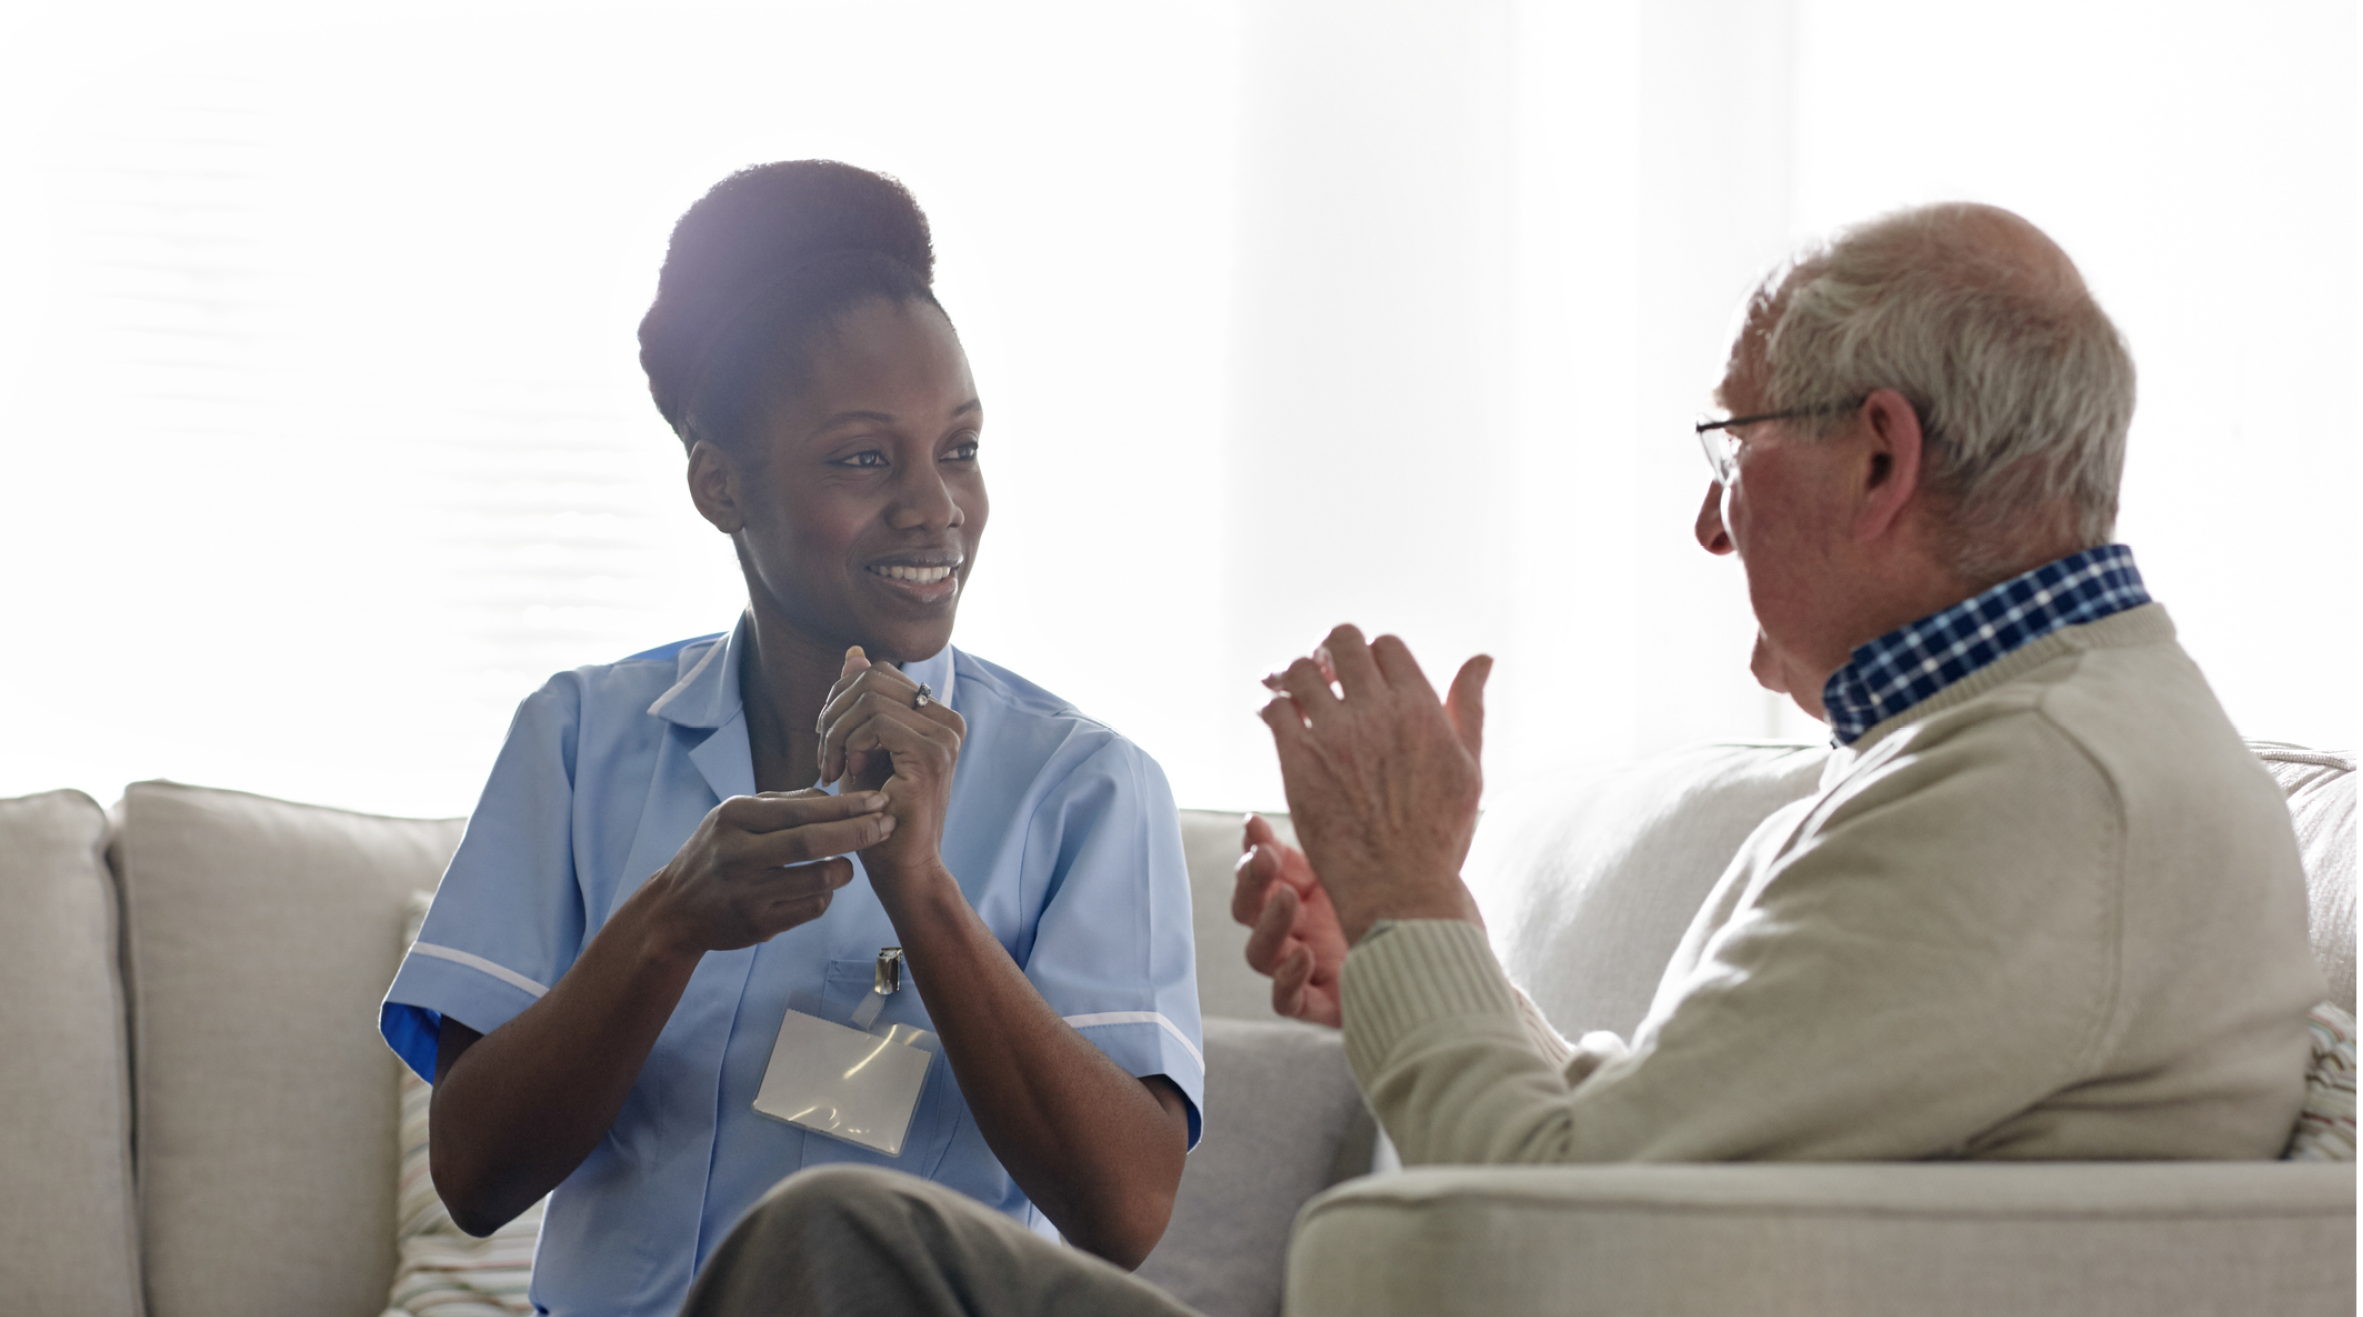 Policies and Procedures for Caring for and Communicating with Deaf and Hard of Hearing Patients – Make Sure Your Clinics and Affiliated Practices Have Them